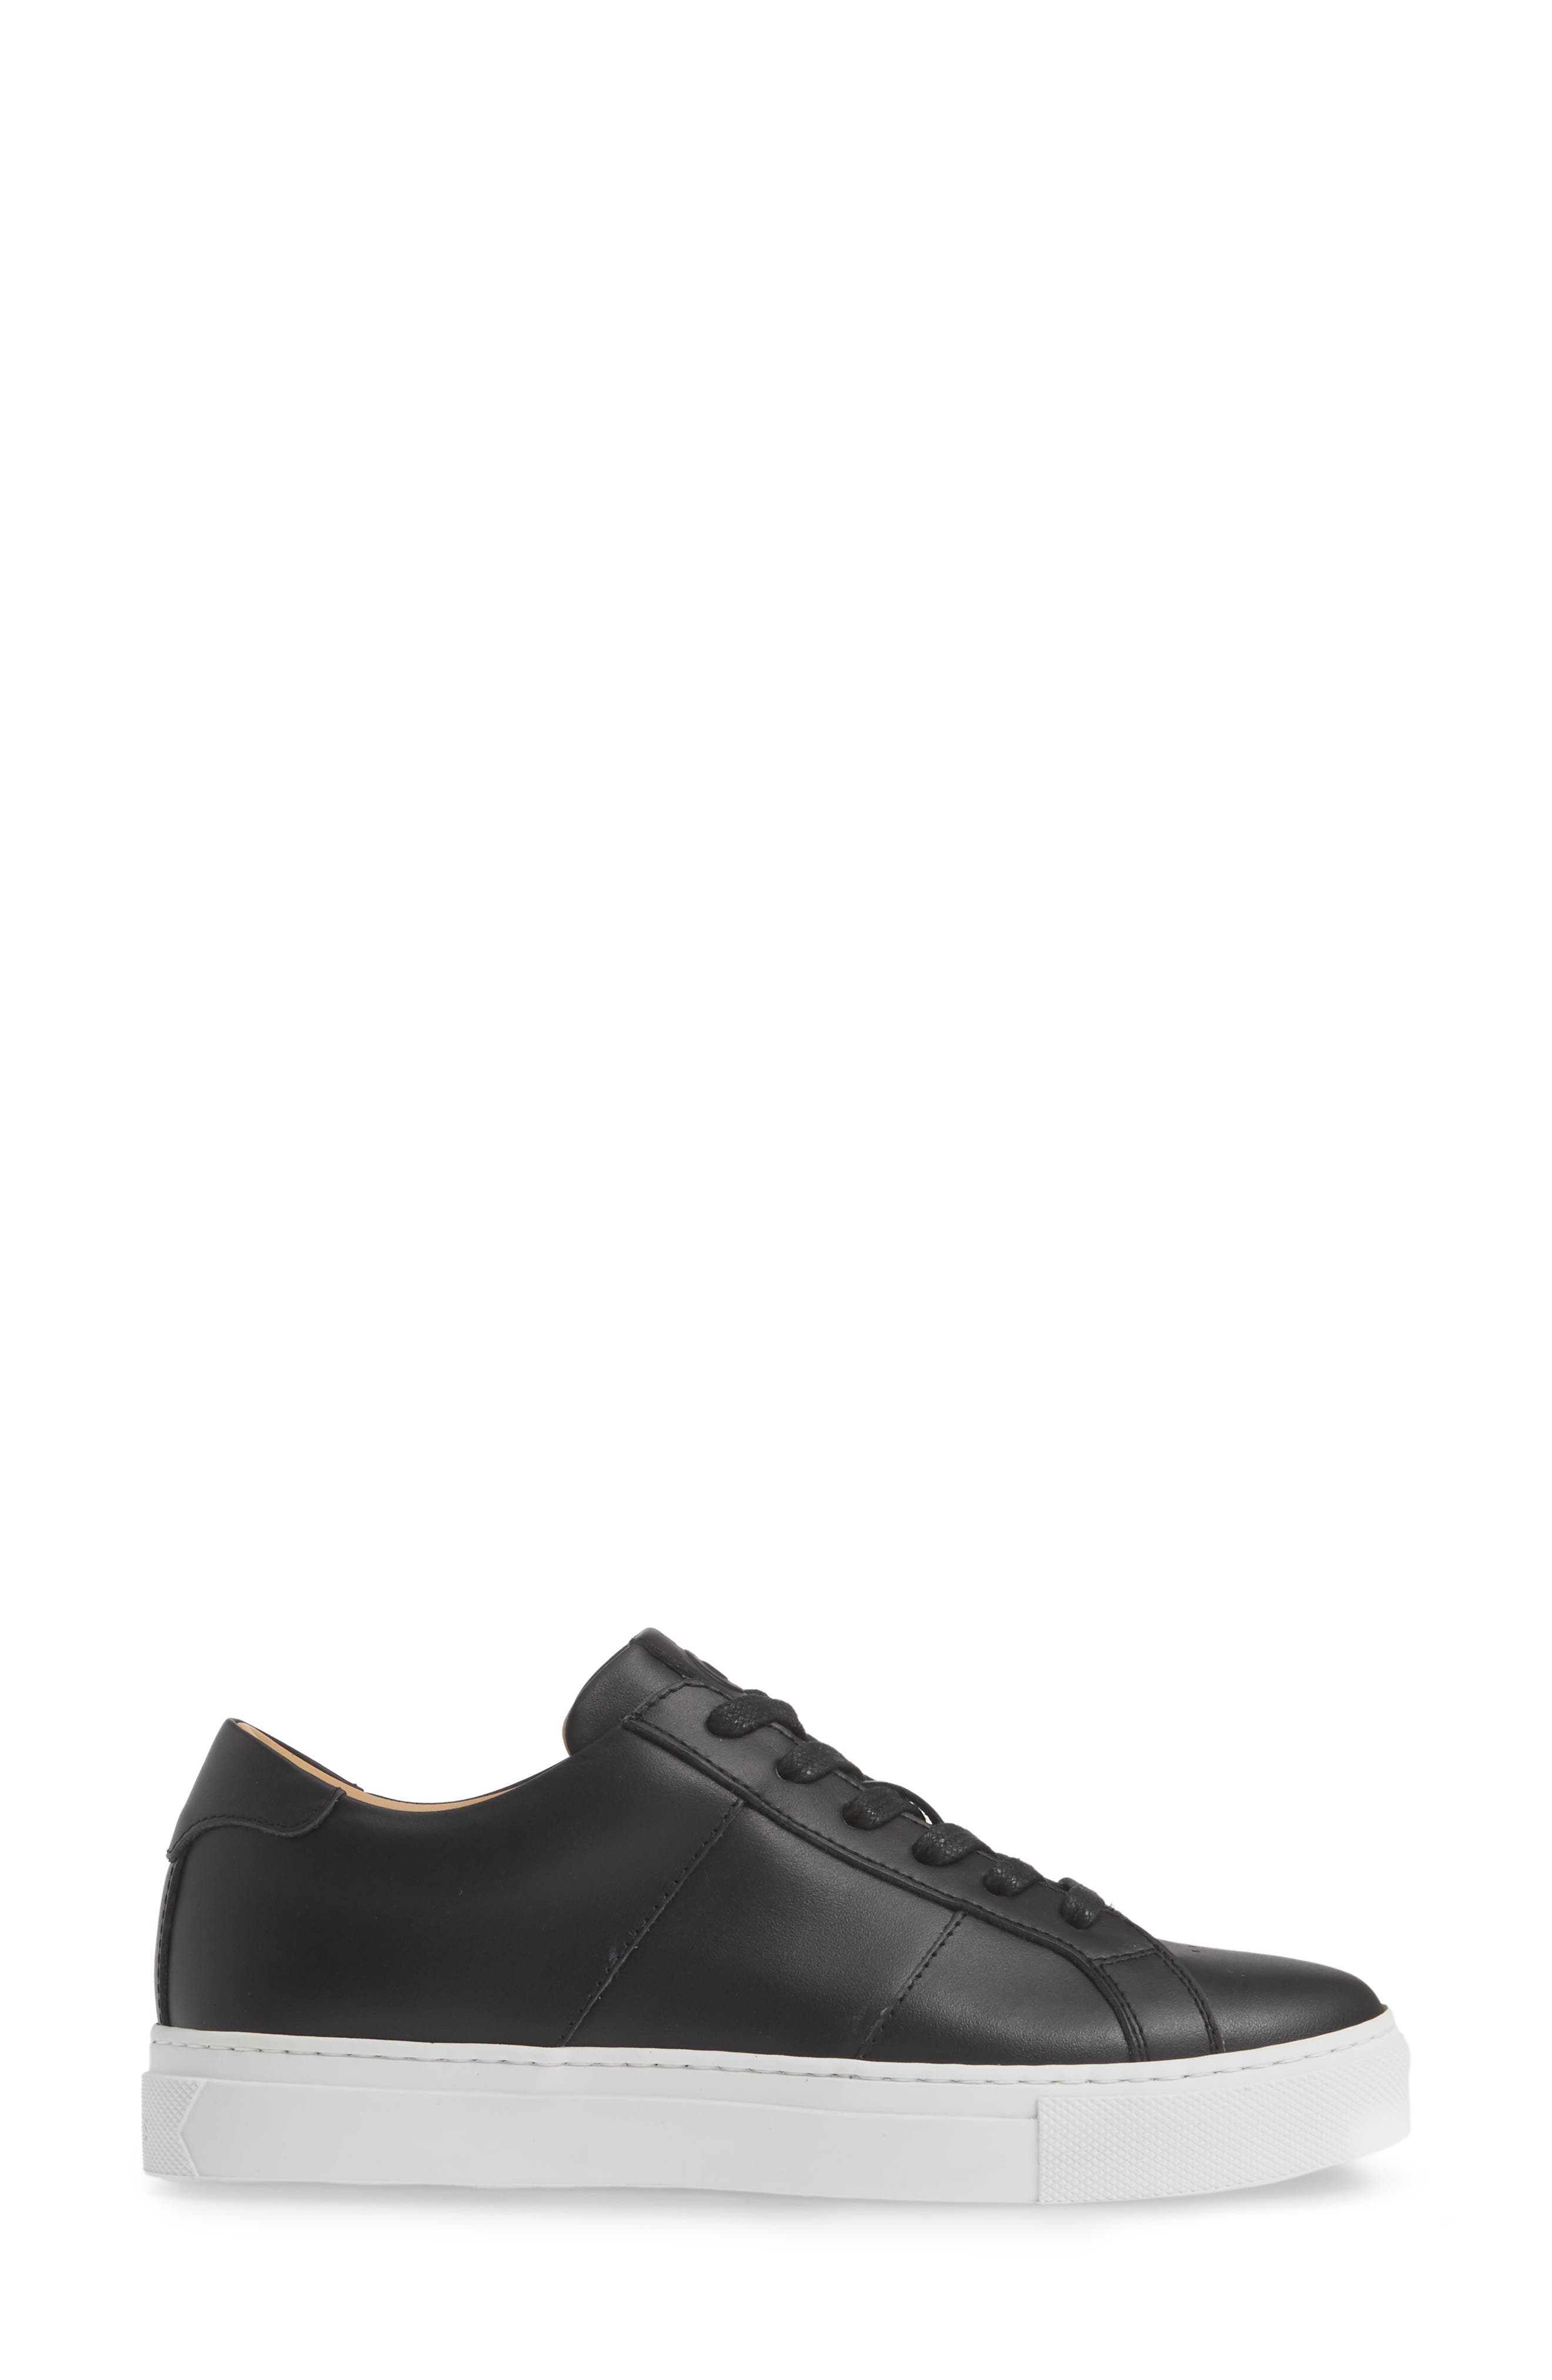 GREATS, Royale Low Top Sneaker, Alternate thumbnail 3, color, BLACK LEATHER